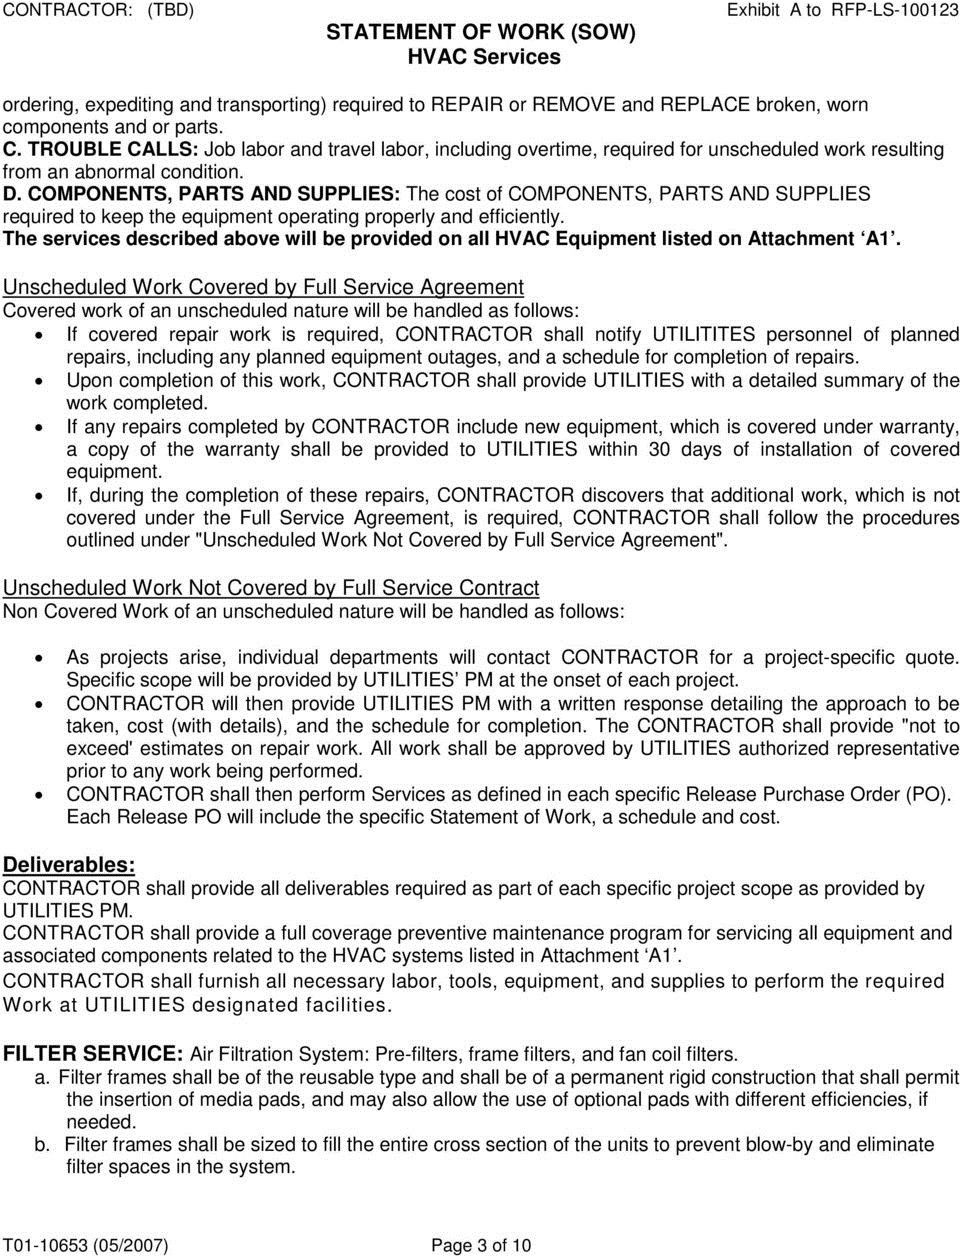 008 Unbelievable Commercial Hvac Service Agreement Template High Resolution  Maintenance Contract960